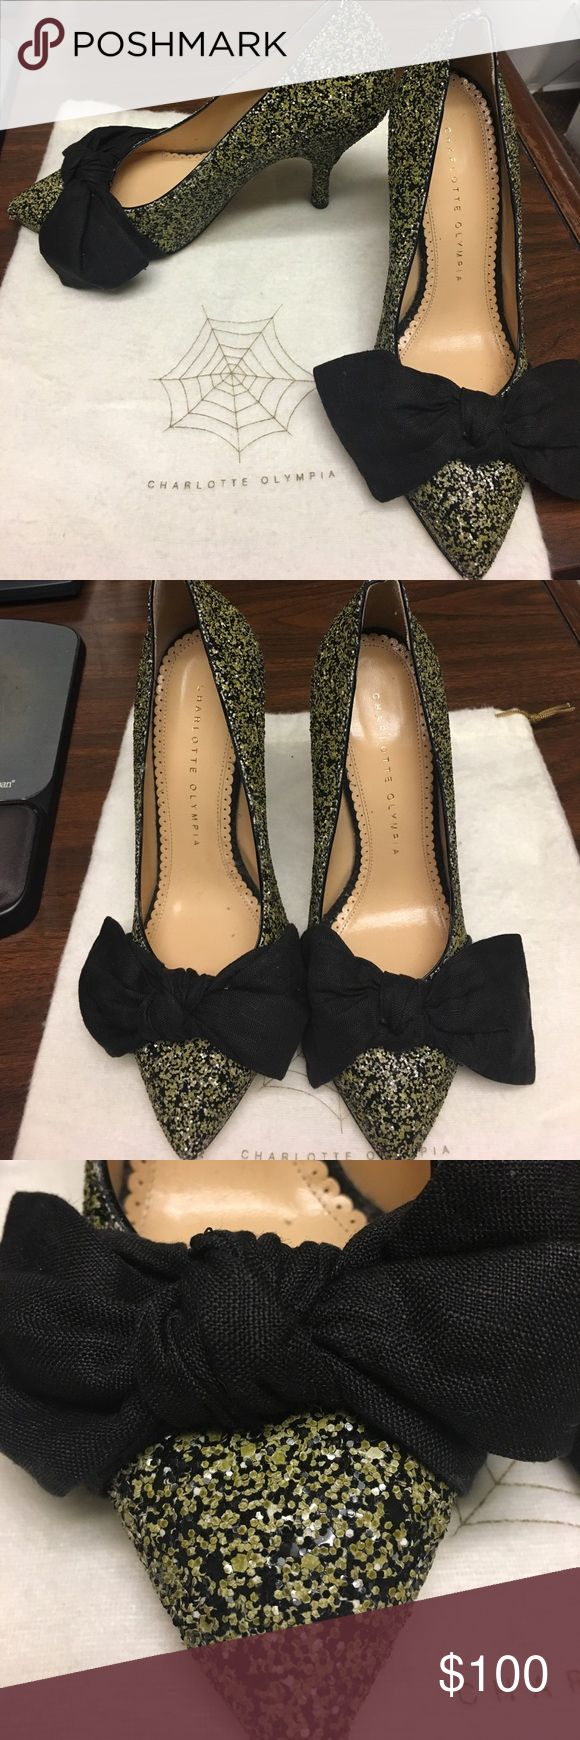 like new! perfect for holiday party! Gorgeous barely worn Charlotte Olympia heels with bow detail and green and black sequins. Comes with dust bag and box! EUR size 36 US 6. Genuine leather, made in Italy  Charlotte Olympia Shoes Heels